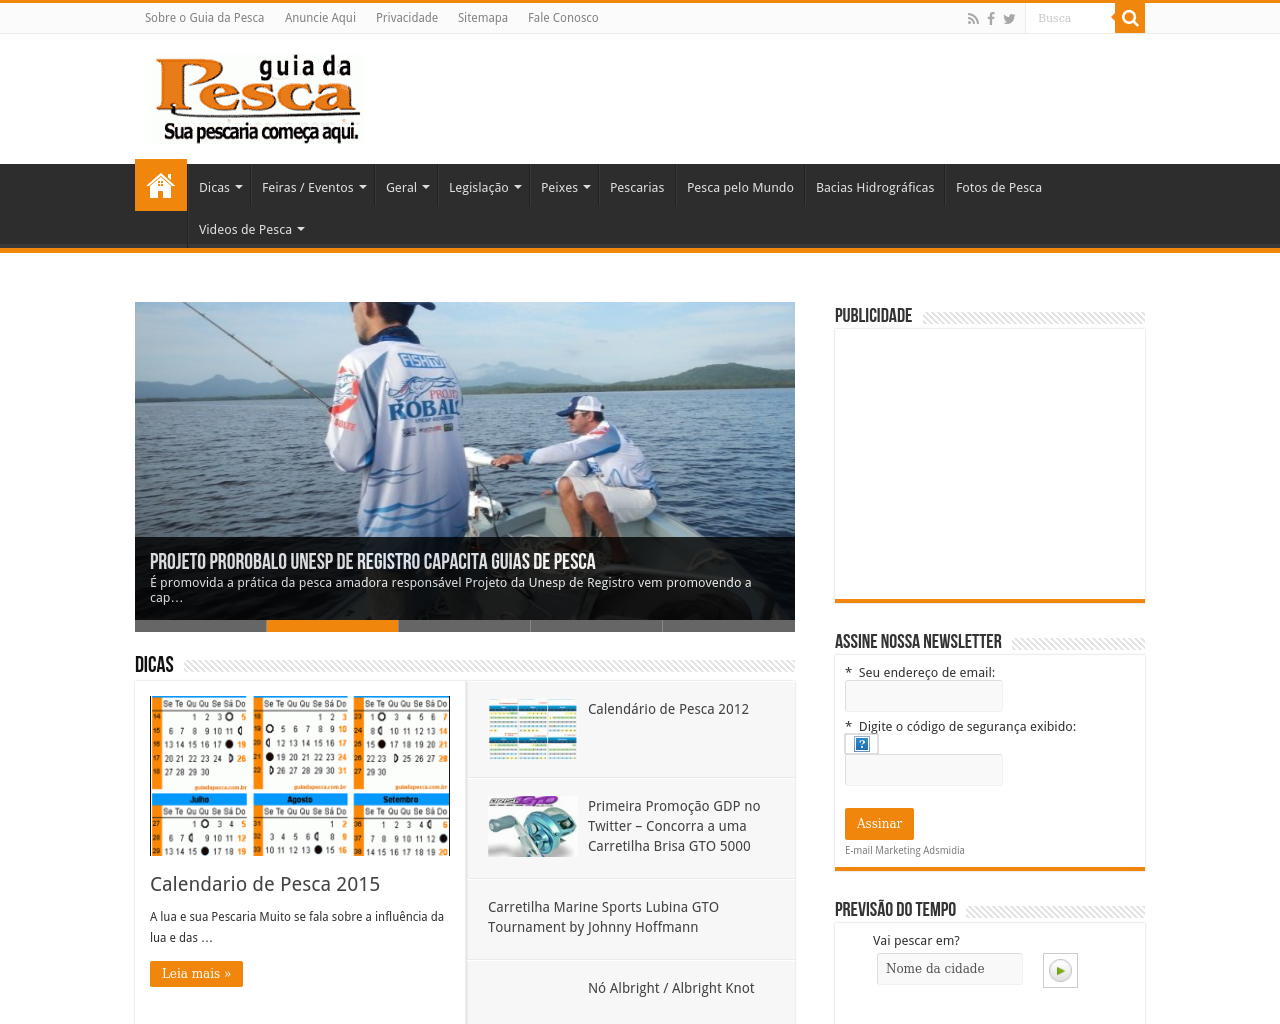 Guia-da-Pesca-(Fishing-Guide)-Advertising-Reviews-Pricing